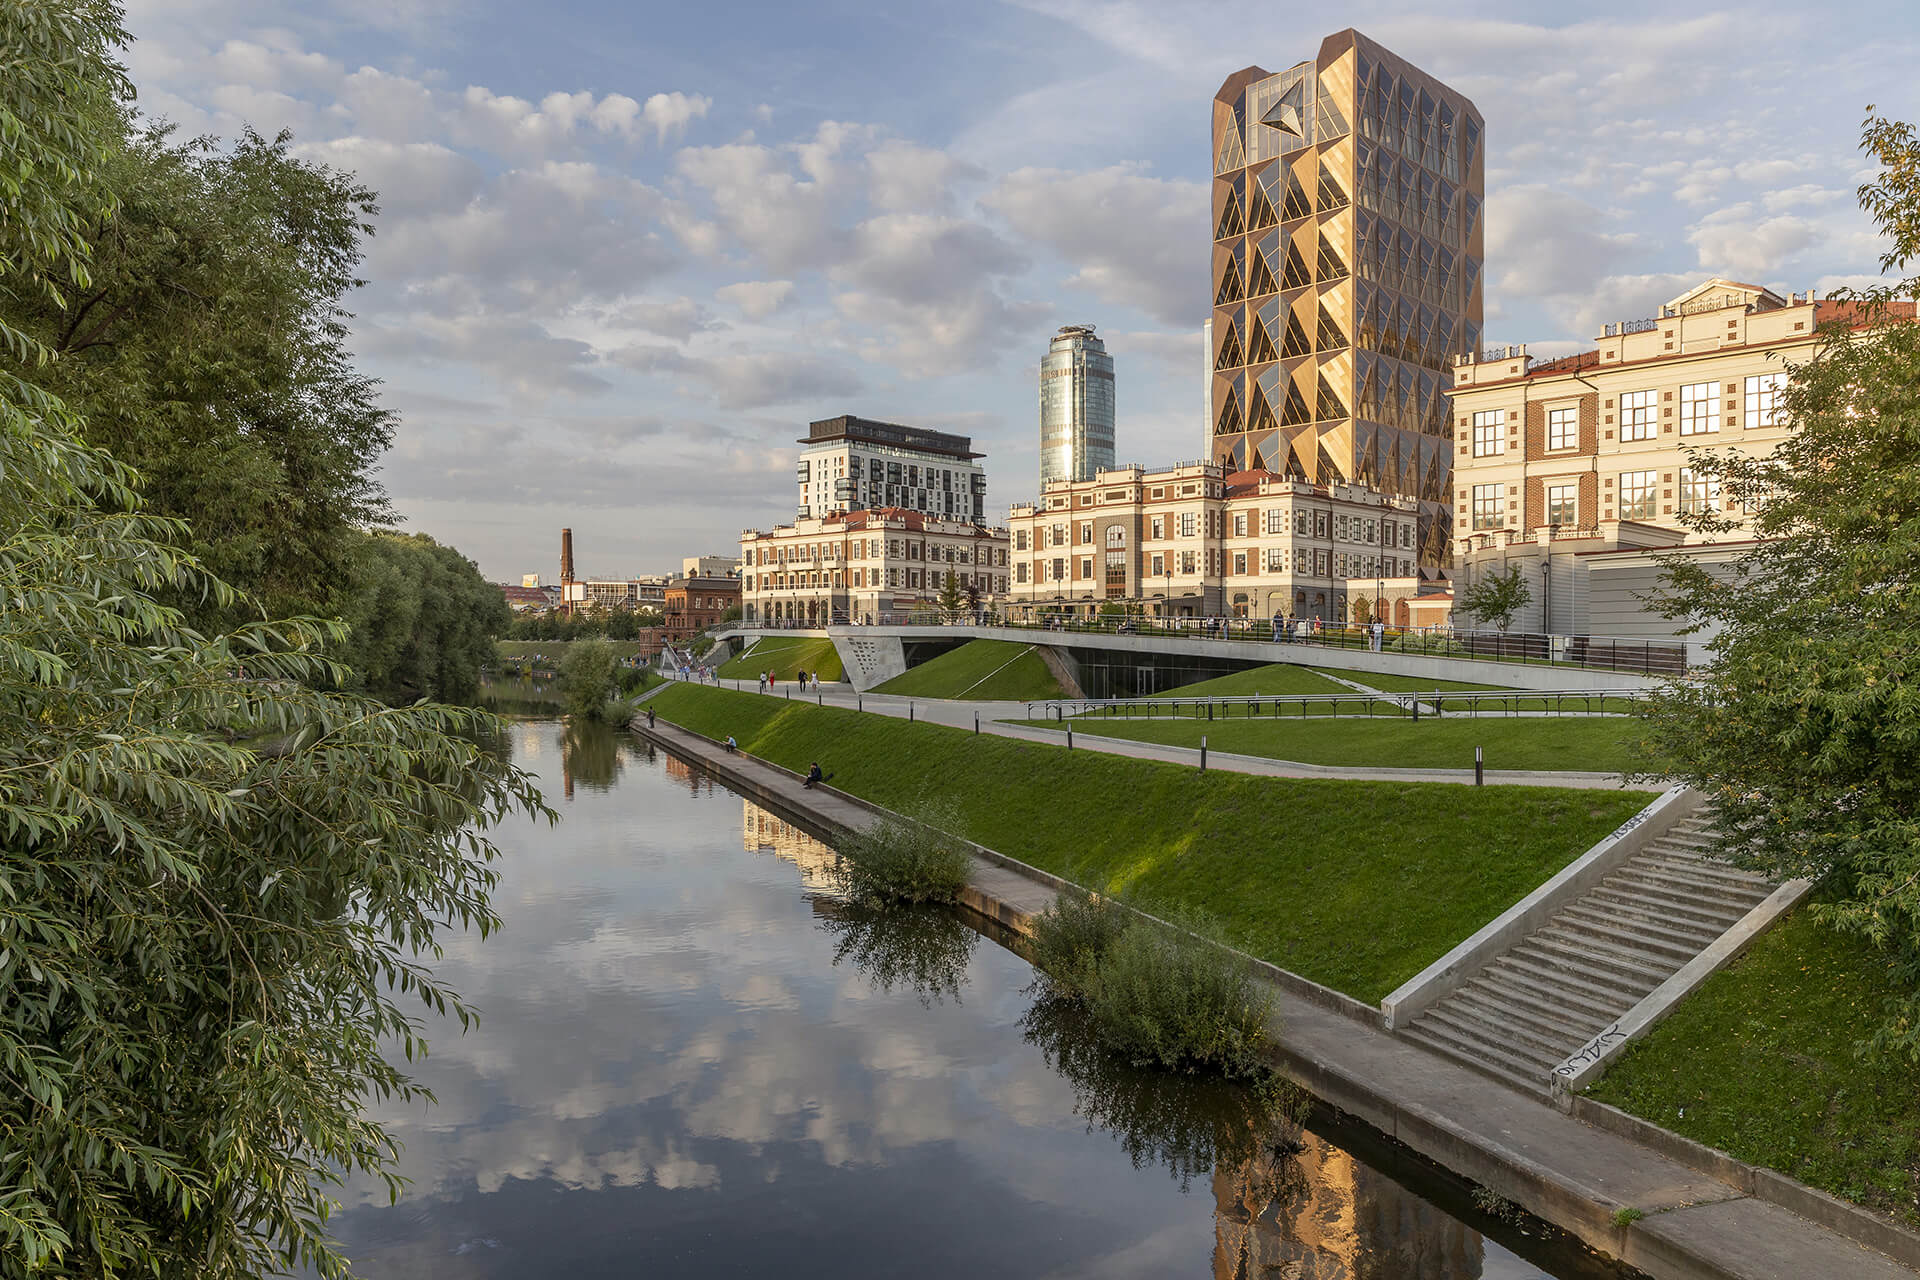 Exterior view from Iset River: The building pays tribute to the organization's line of work while providing a dazzling riverside landmark for residents | RCC Headquarters by Foster + Partners | STIRworld